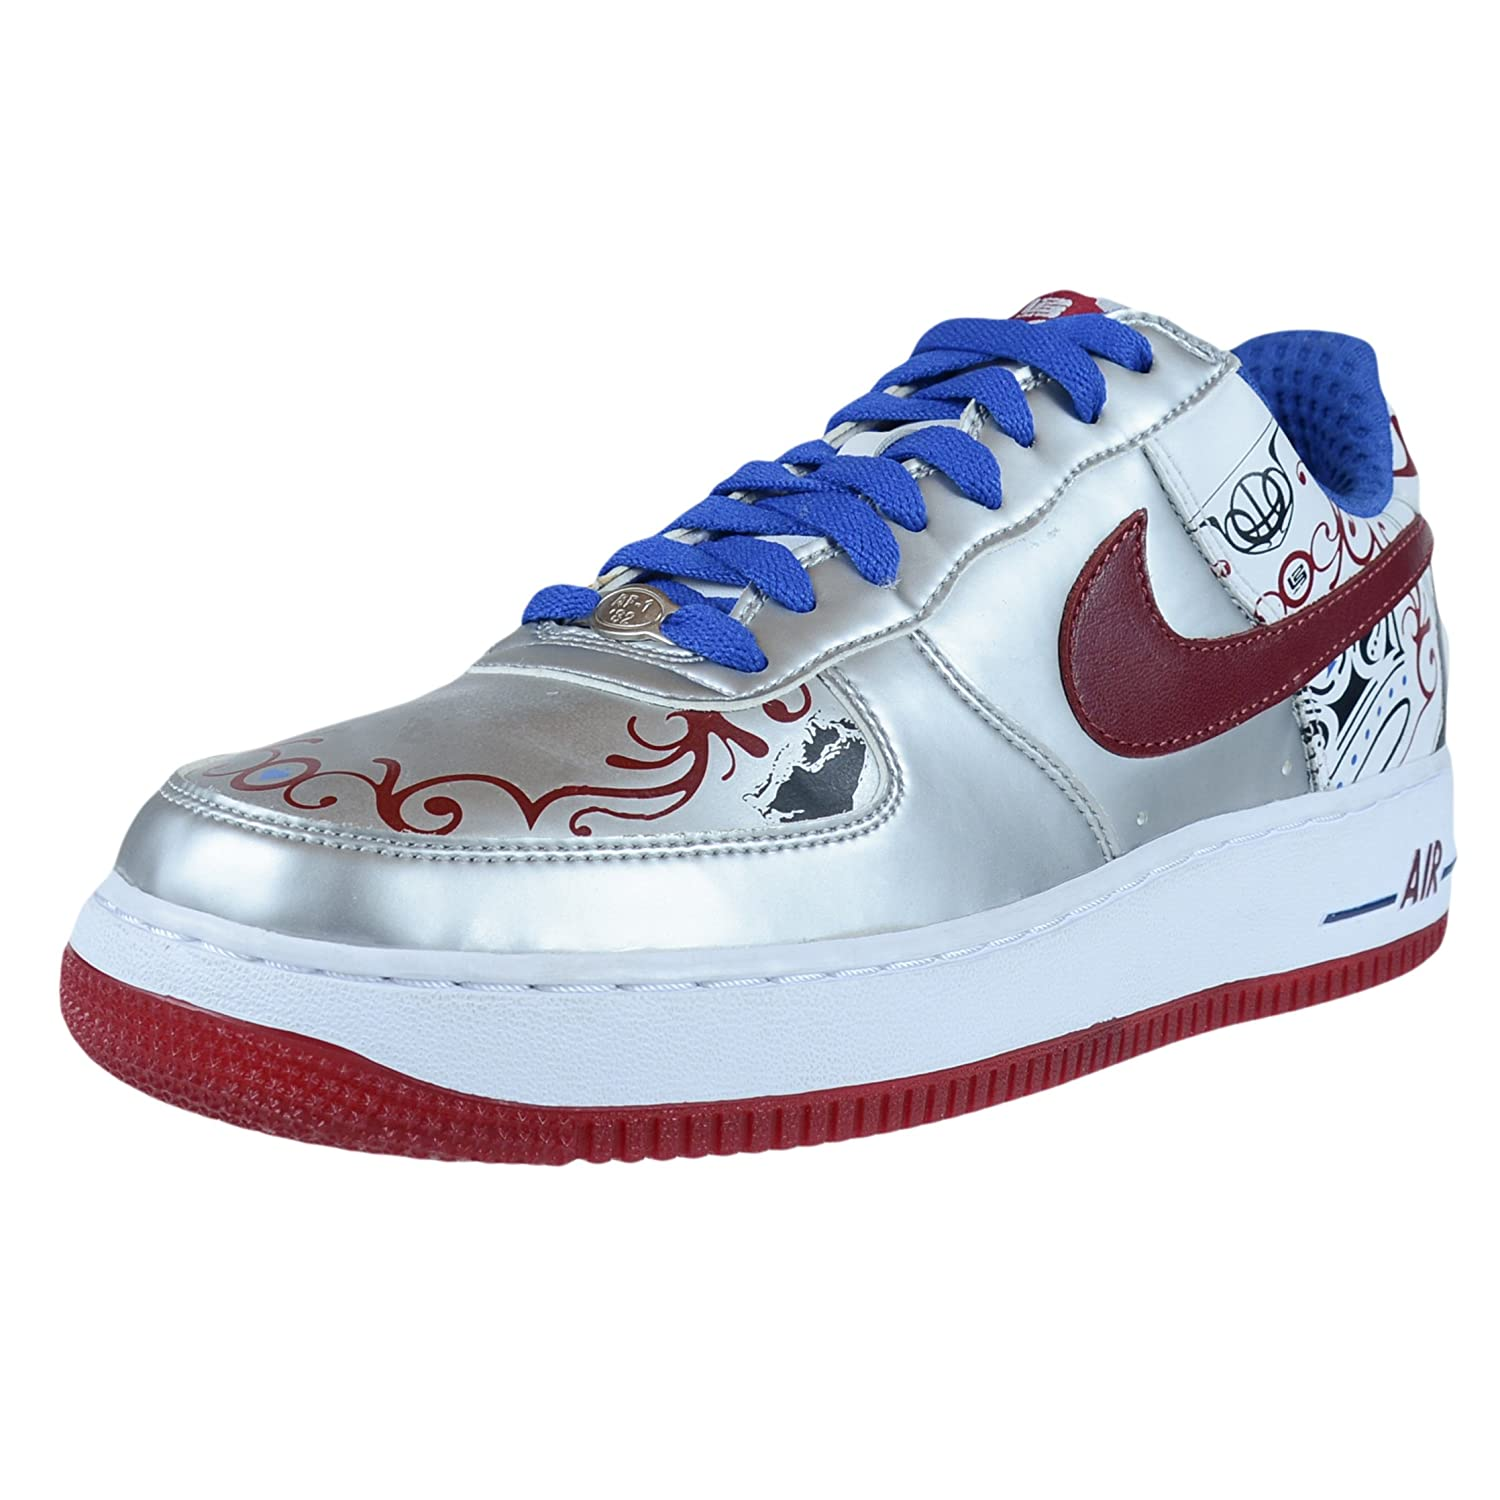 20974ac5612 where to buy lebrons nike air force af1